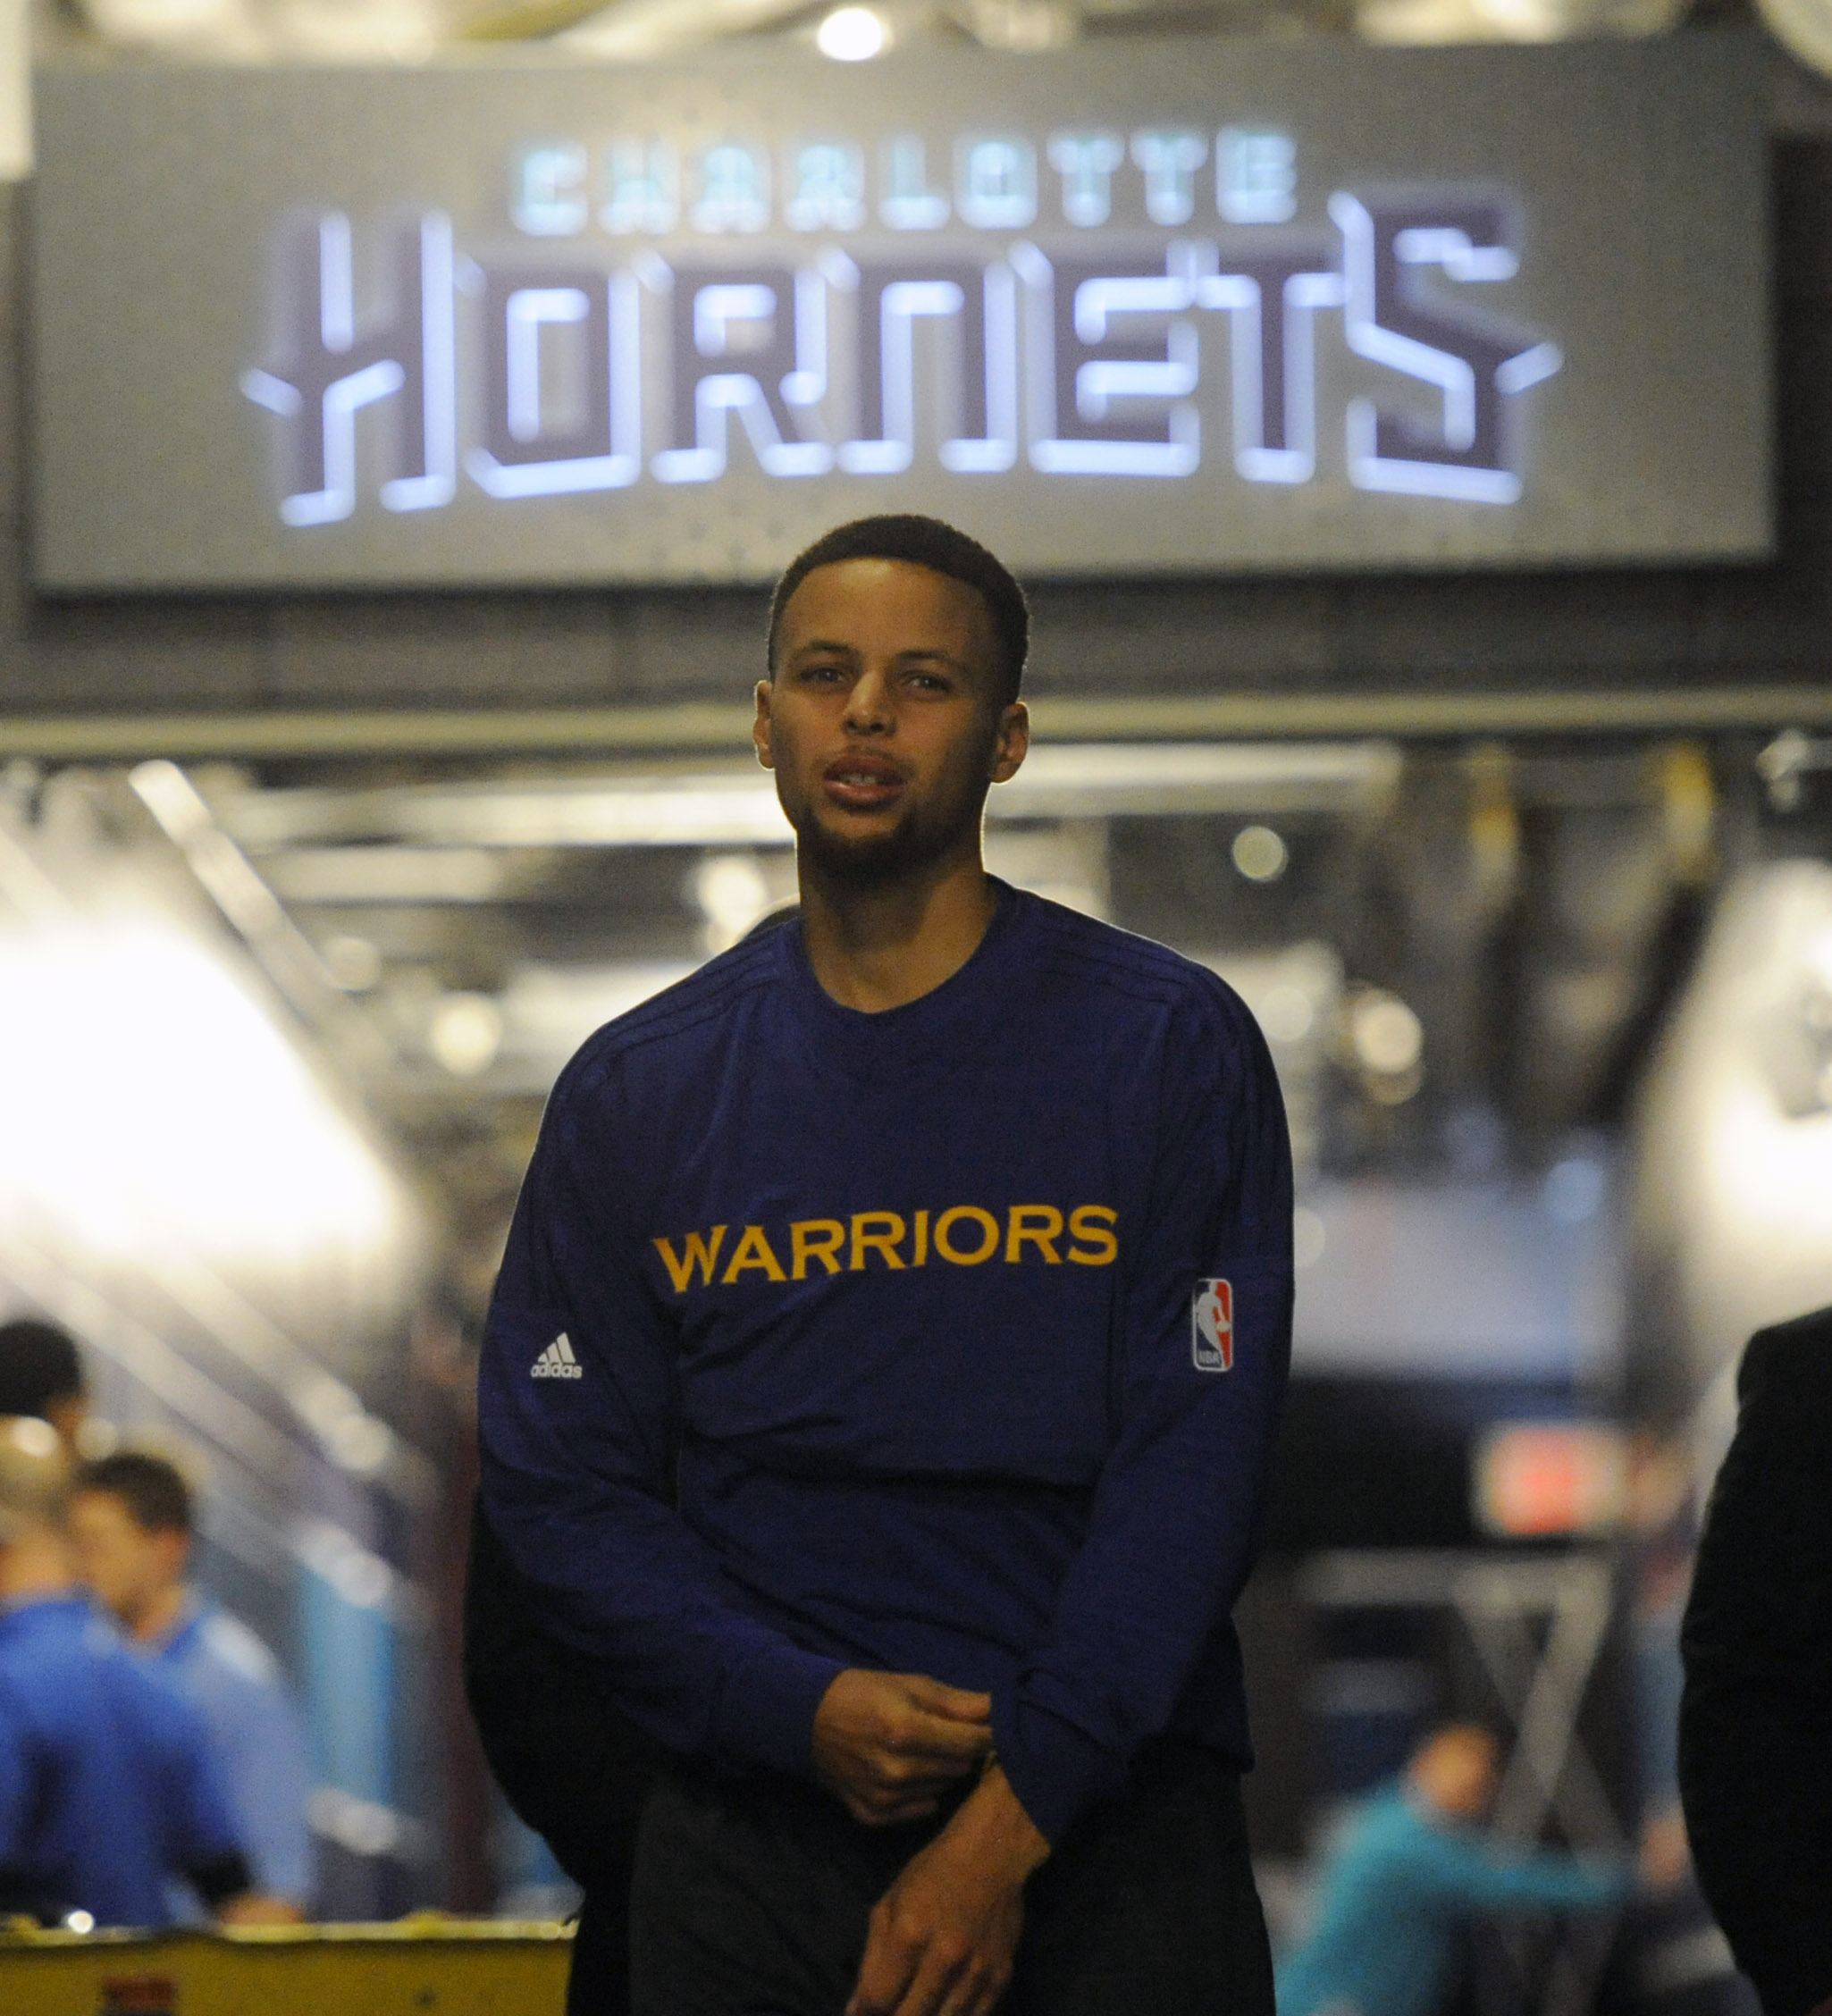 Cropping makes you forget Steph's wearing a Warriors warmup, right?